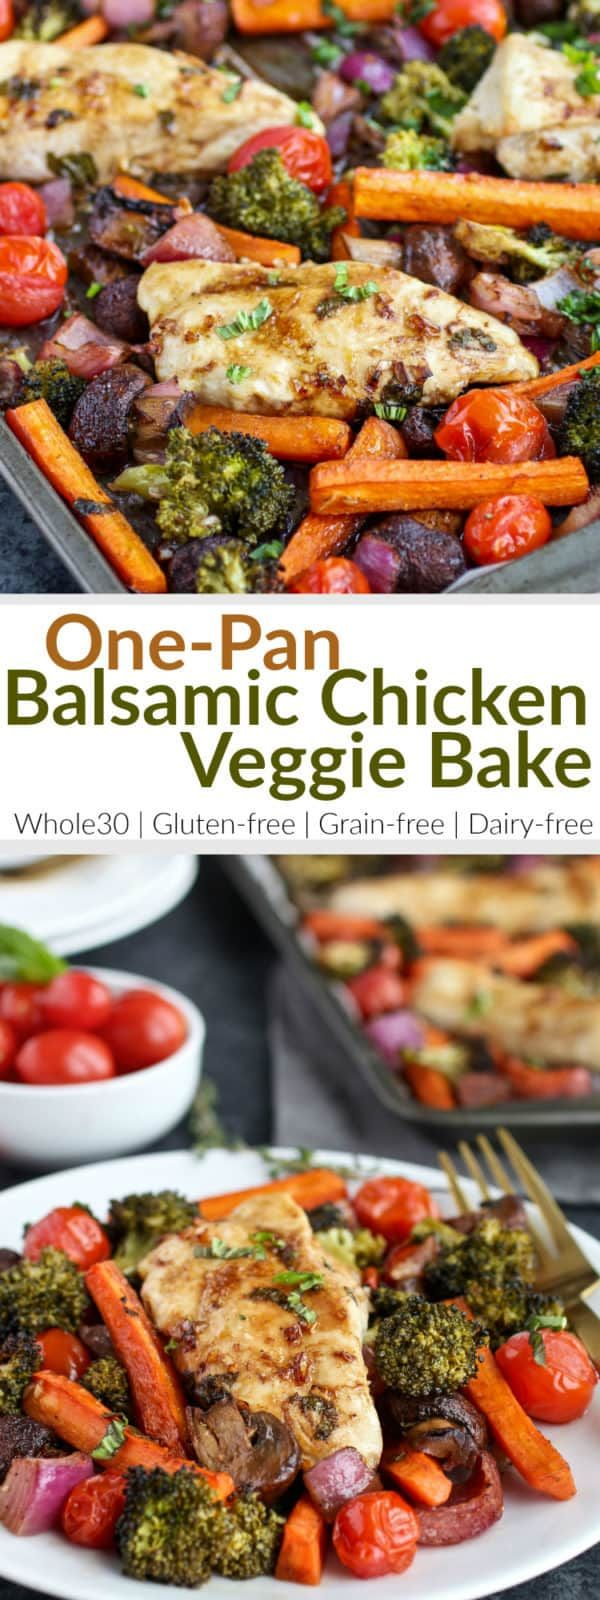 One-Pan Balsamic Chicken Veggie Bake images